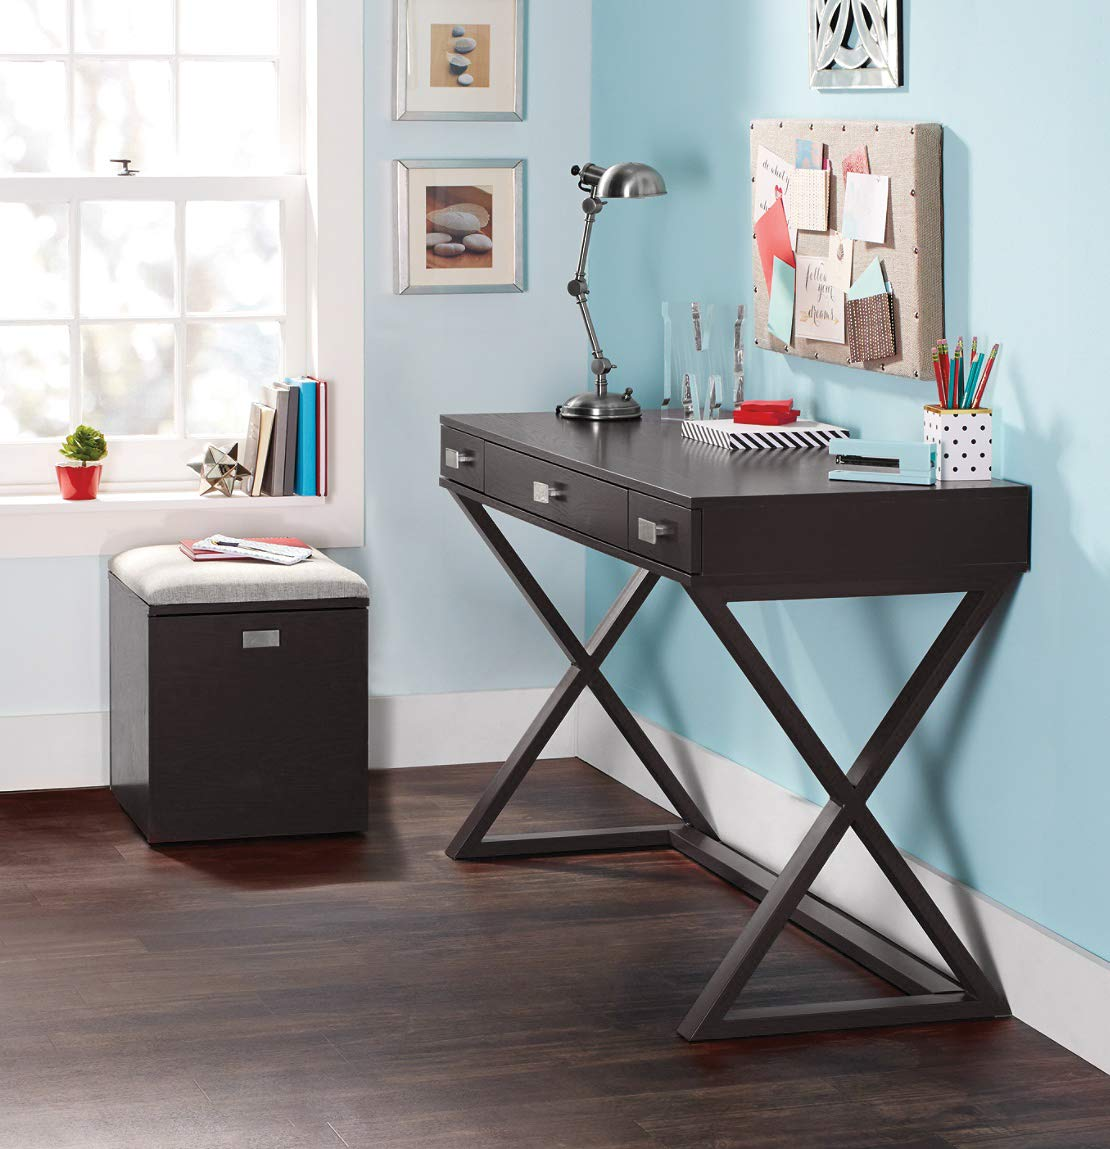 OS Home and Office Furniture Model 384266 Kate Black with Three Drawers Writing Desk